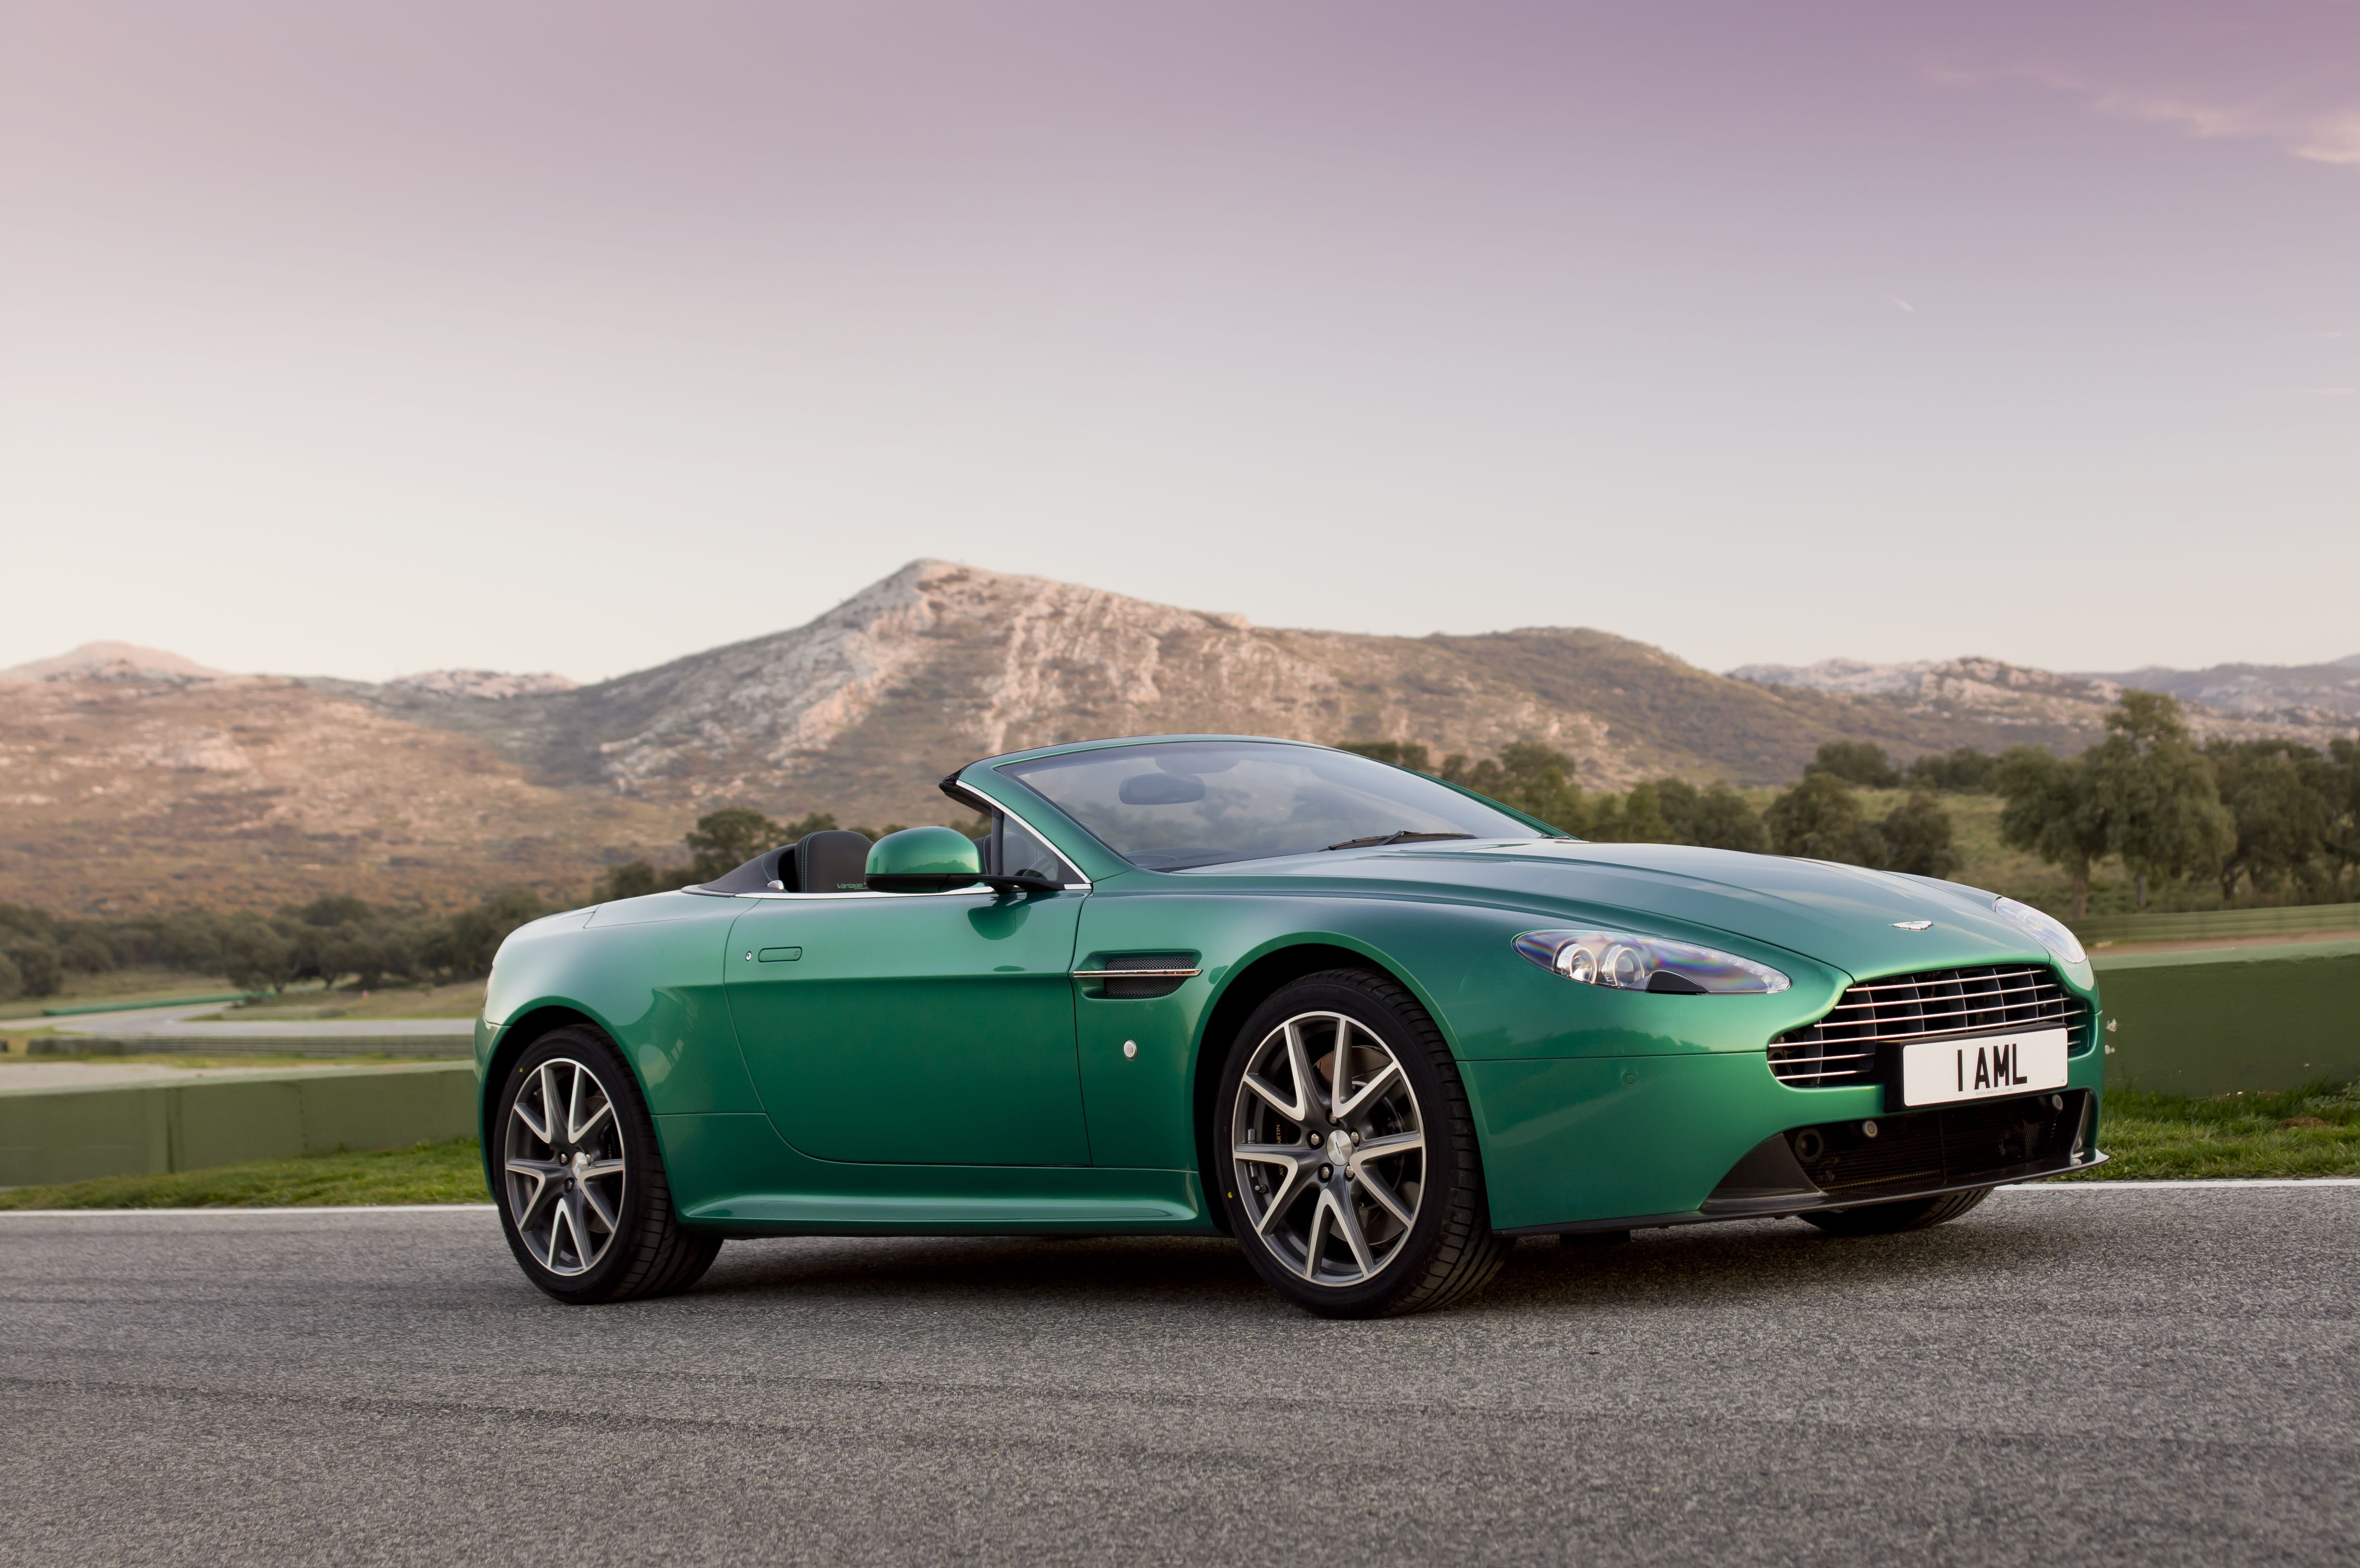 Aston Martin V8 Vantage S A Lesson In Race Bred Dynamism Discover More At Http Www Astonmartin Com Cars Th Aston Martin V8 Aston Martin Aston Martin Models